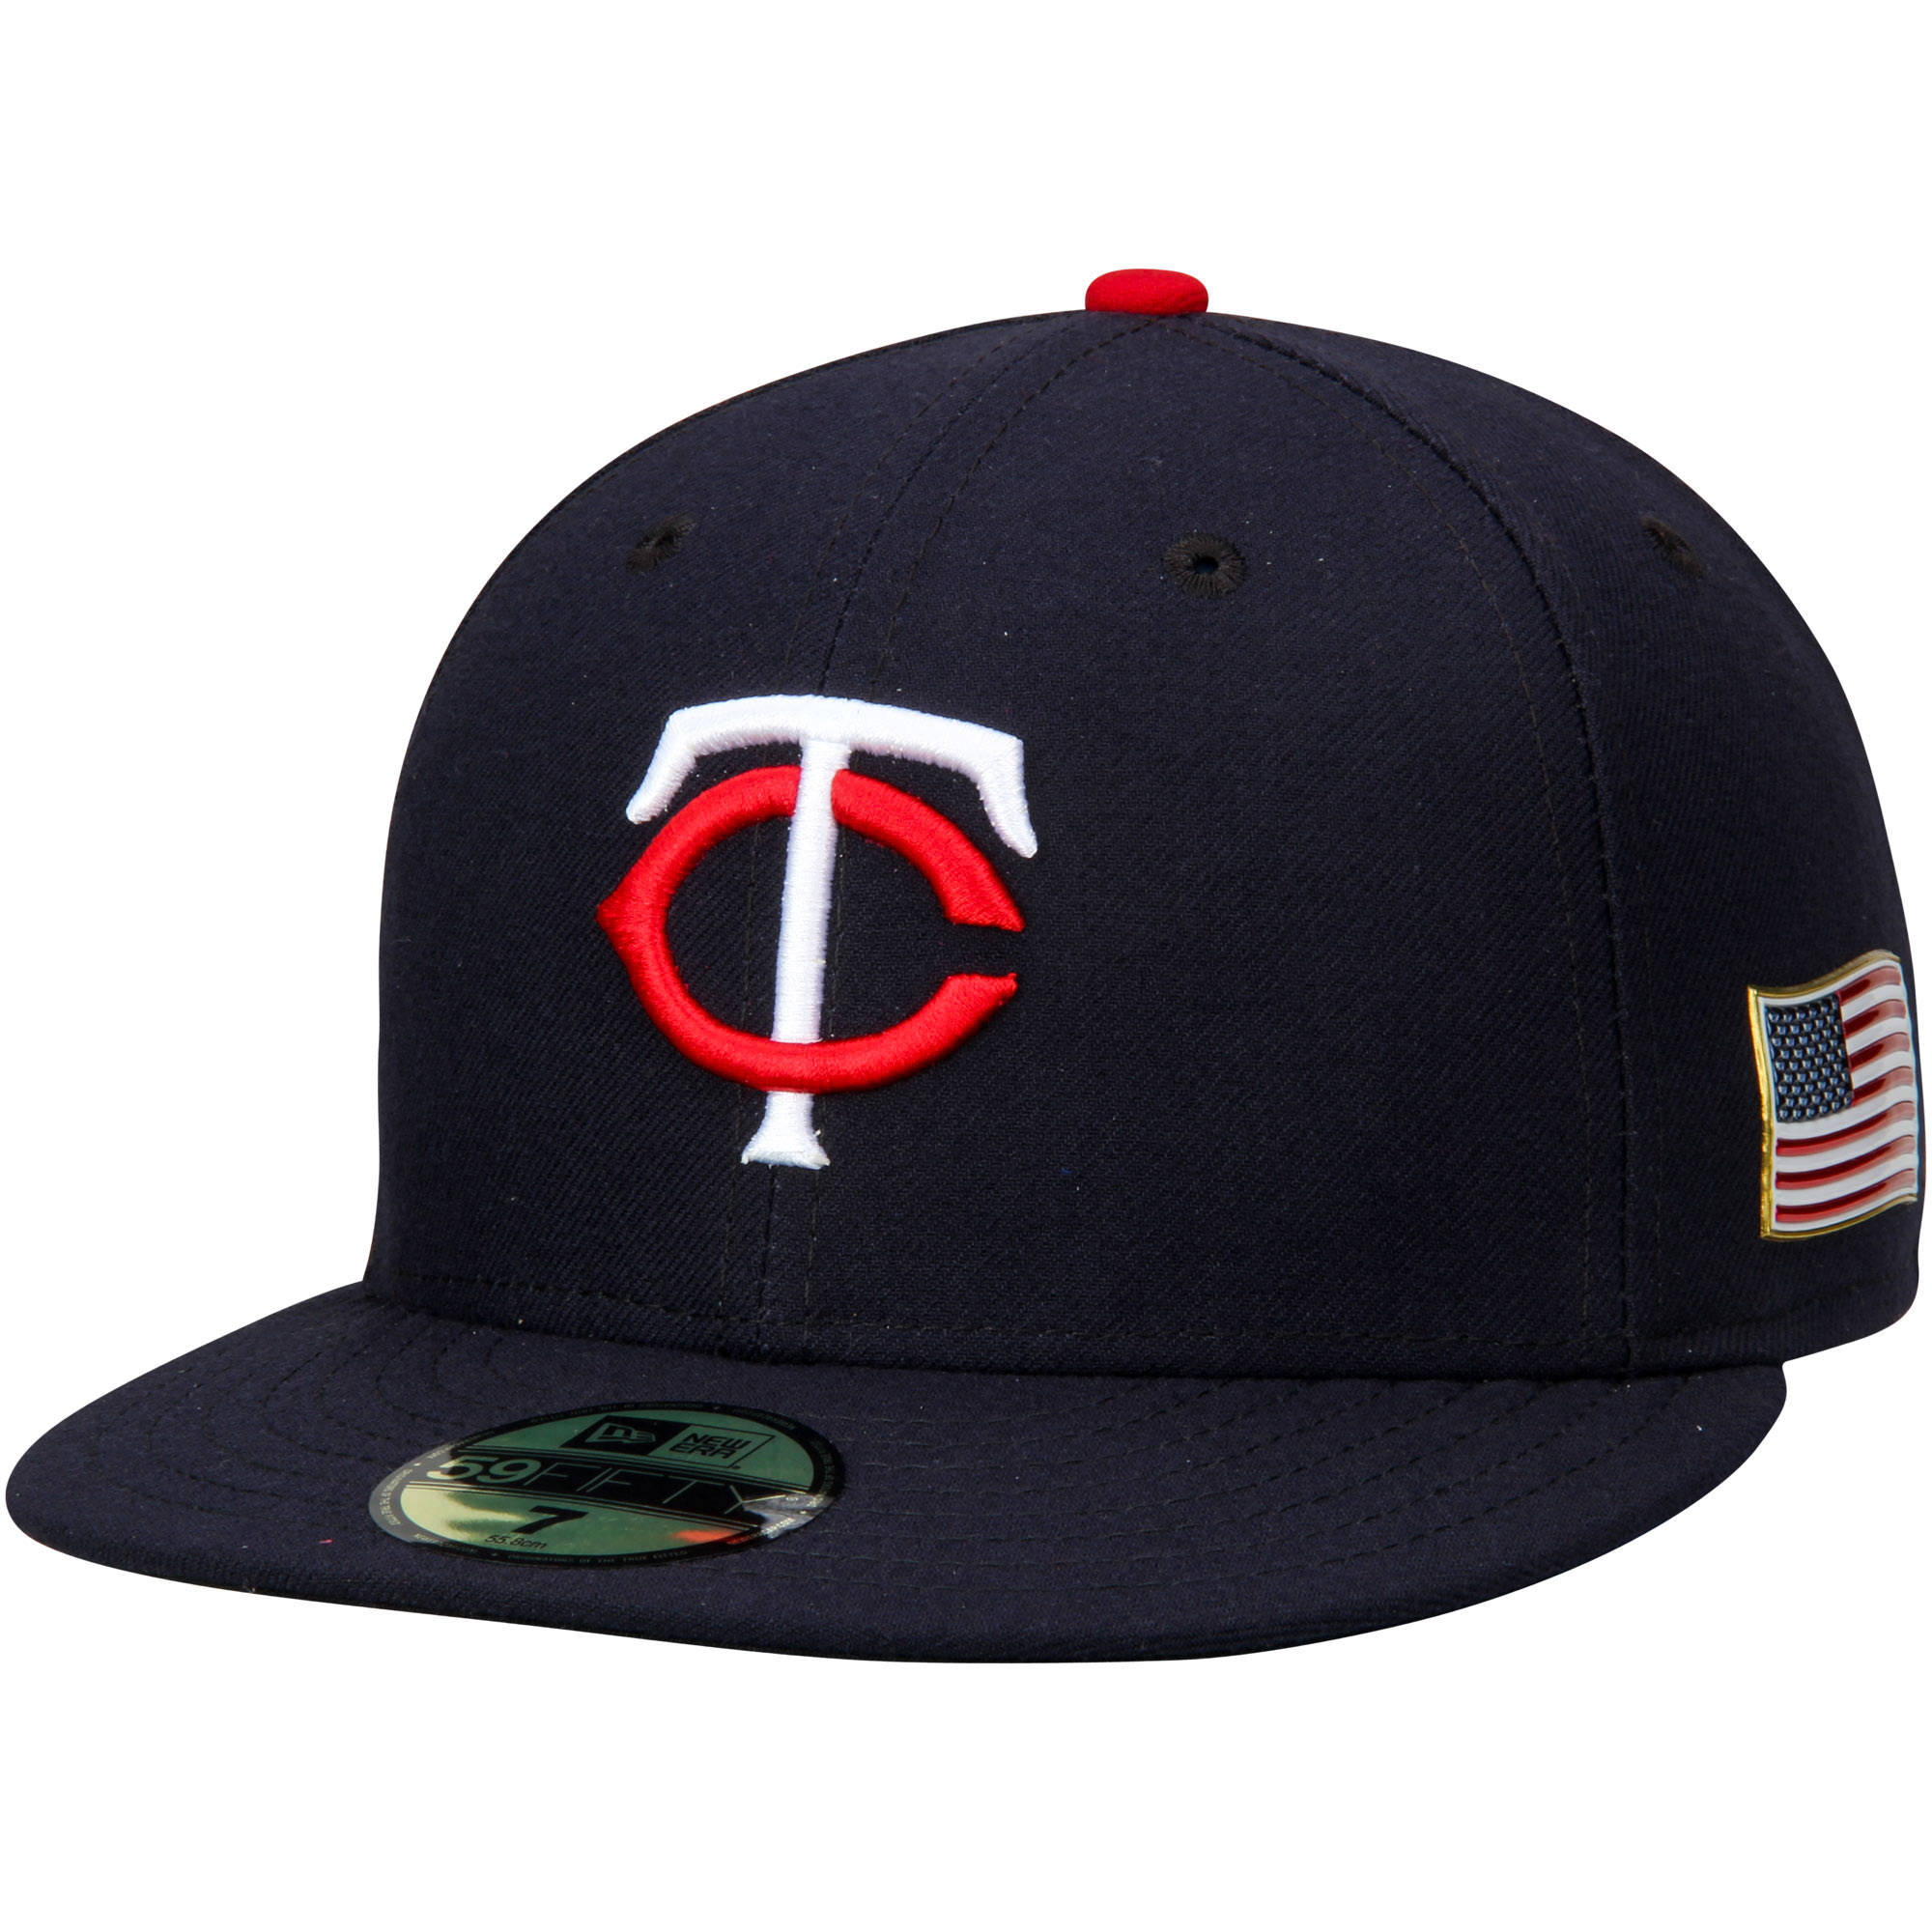 Minnesota Twins New Era Authentic Collection On-Field 59FIFTY Flex Hat with 9/11 Side Patch - Navy